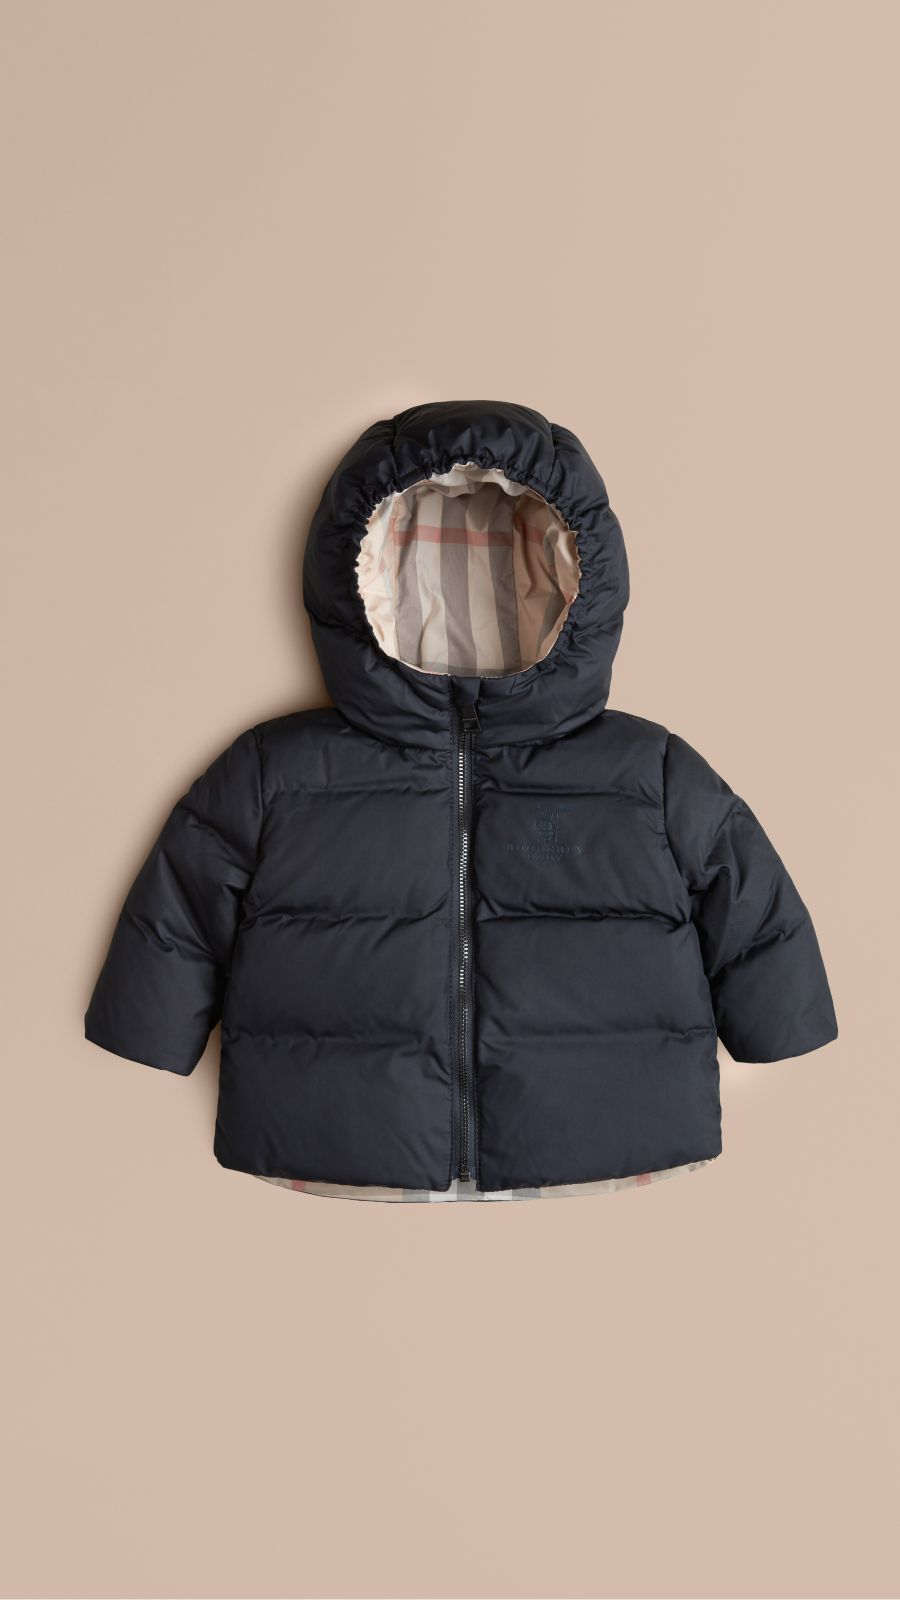 Navy Check-Lined Puffer Jacket Navy - Image 1